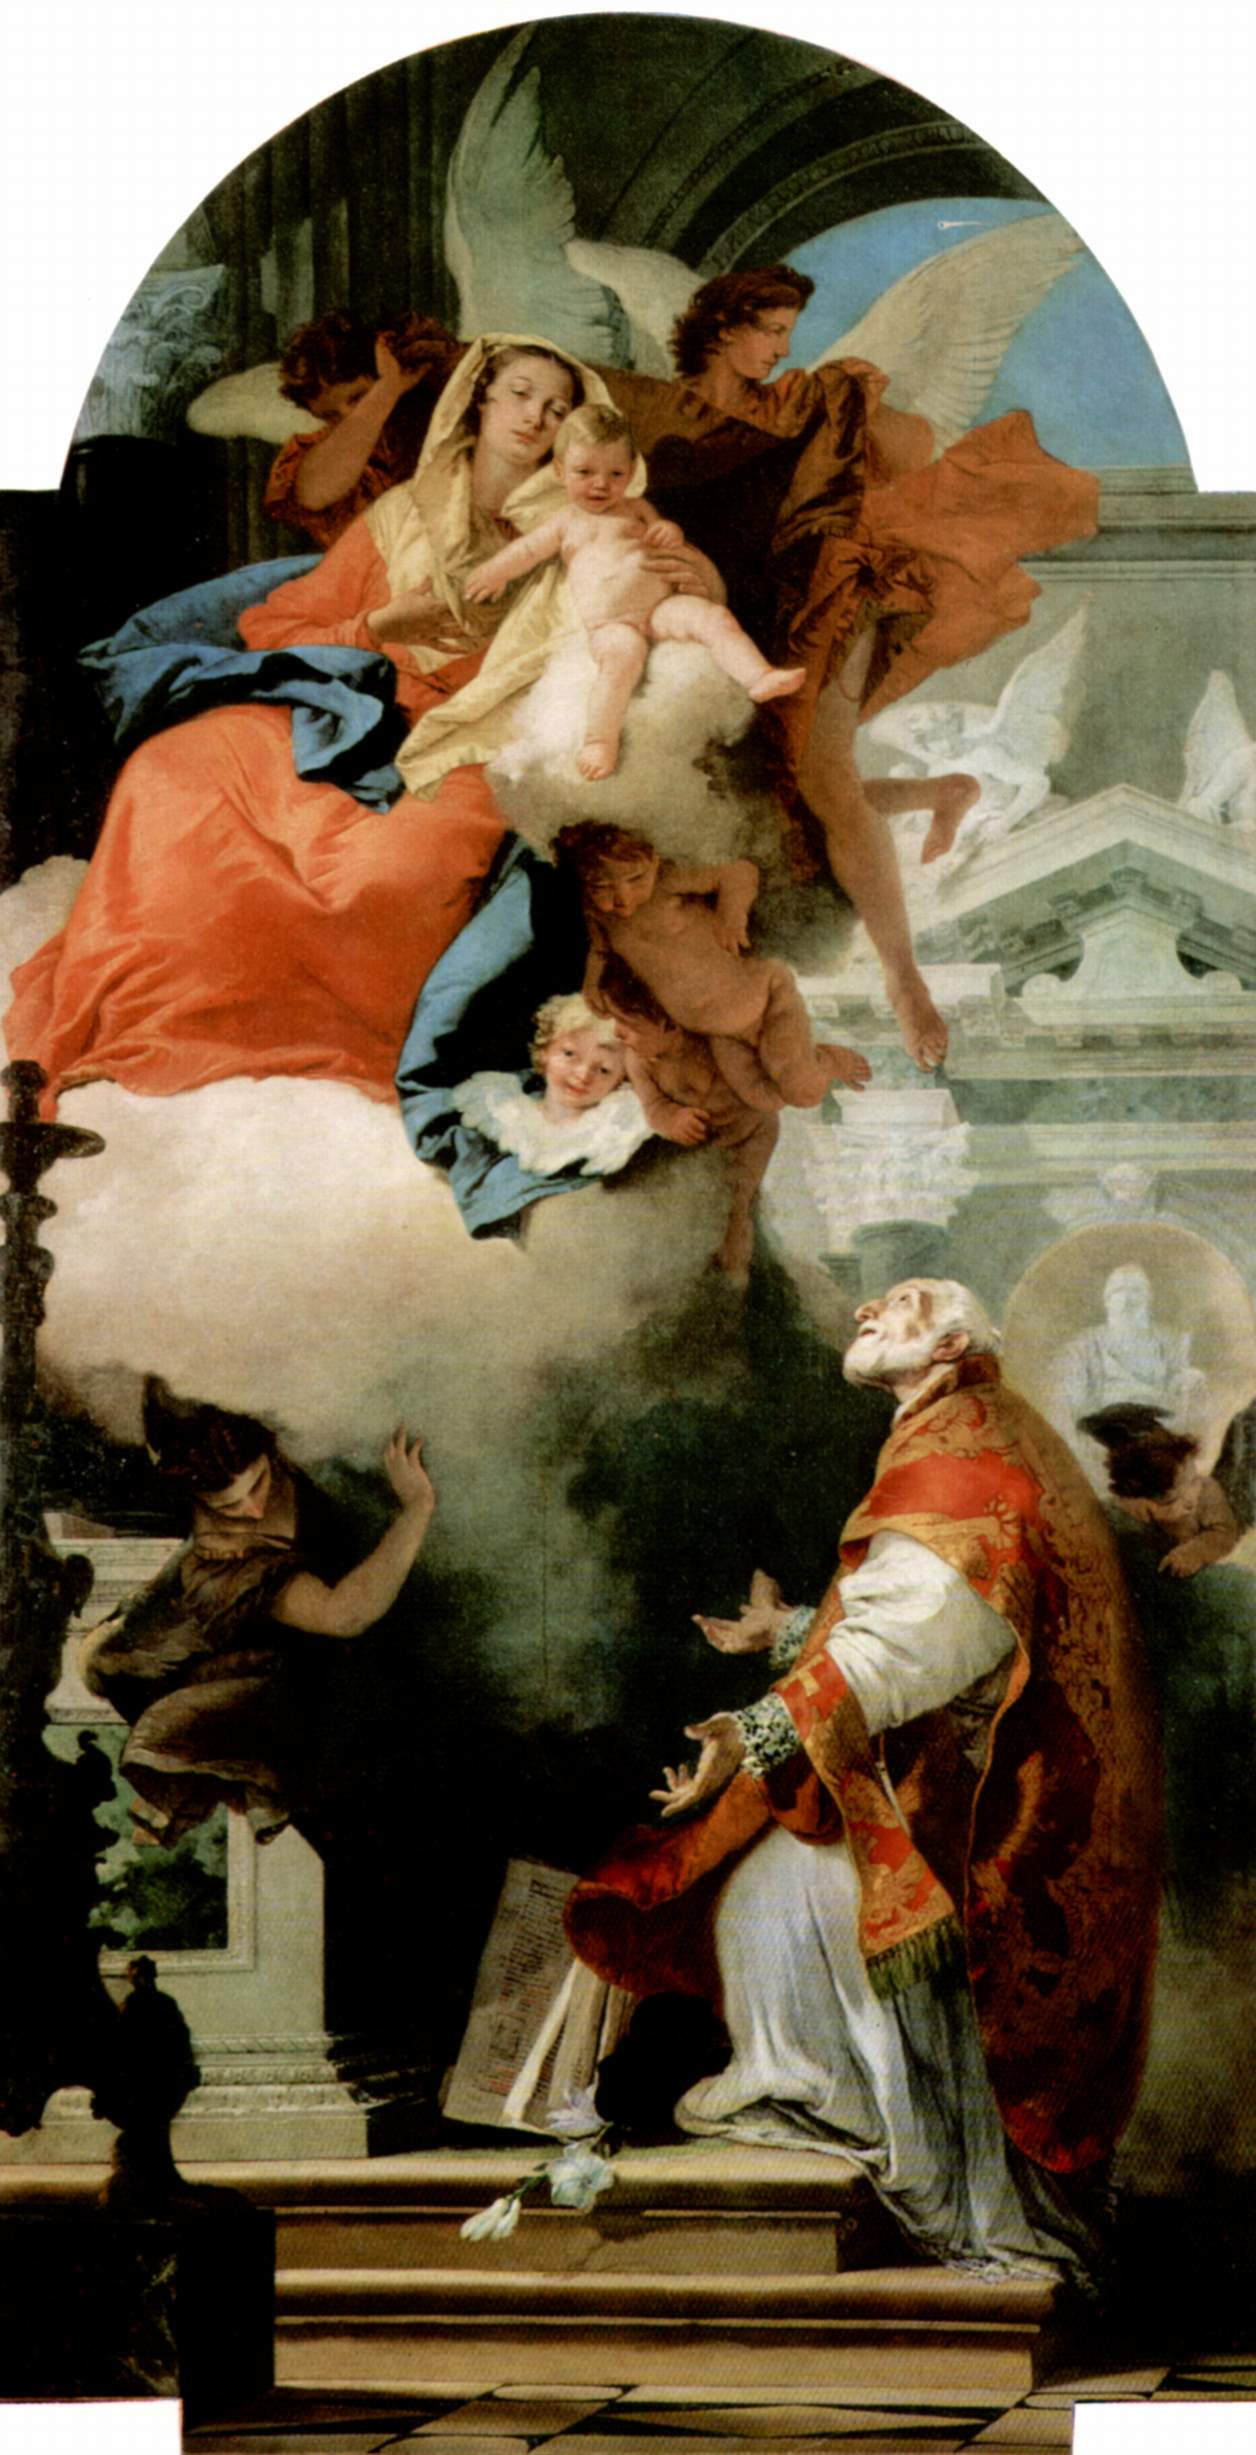 giovanni_battista_tiepolo_025